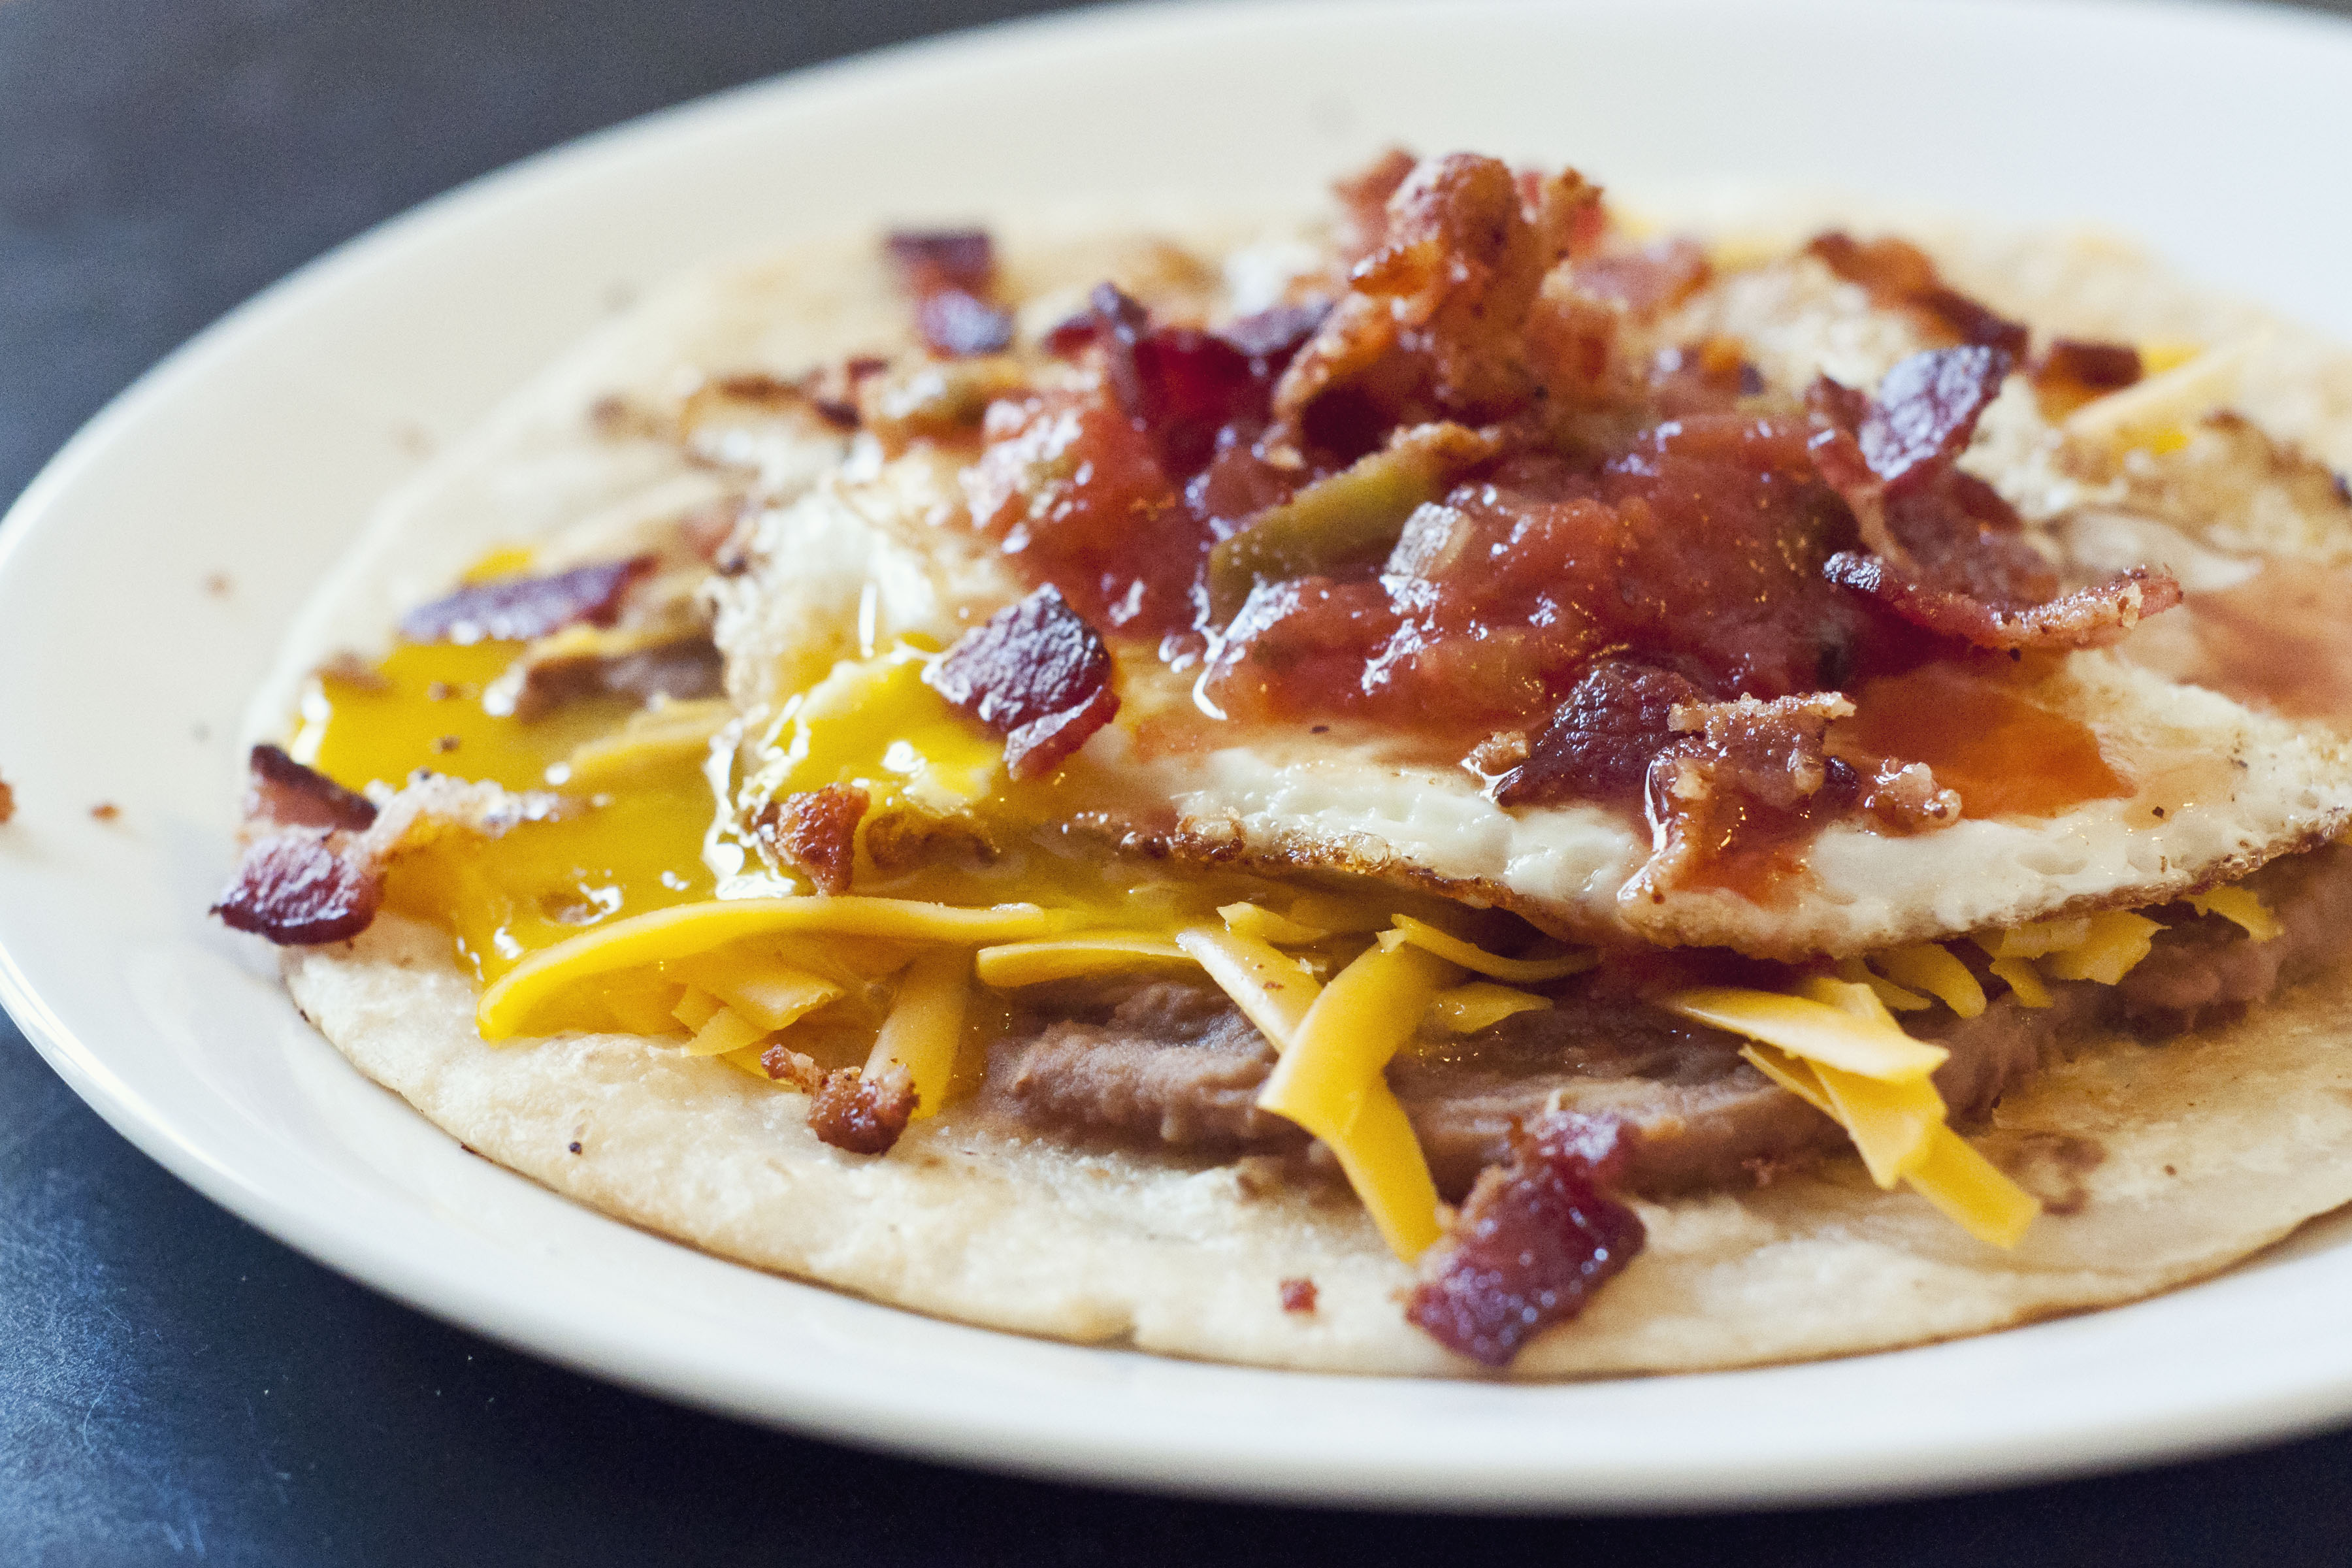 huevos rancheros, egg recipes, cheddar cheese, refried beans, bacon recipes, food, cooking, recipes, huevos rancheros recipes, breakfast recipes, taste arkansas,